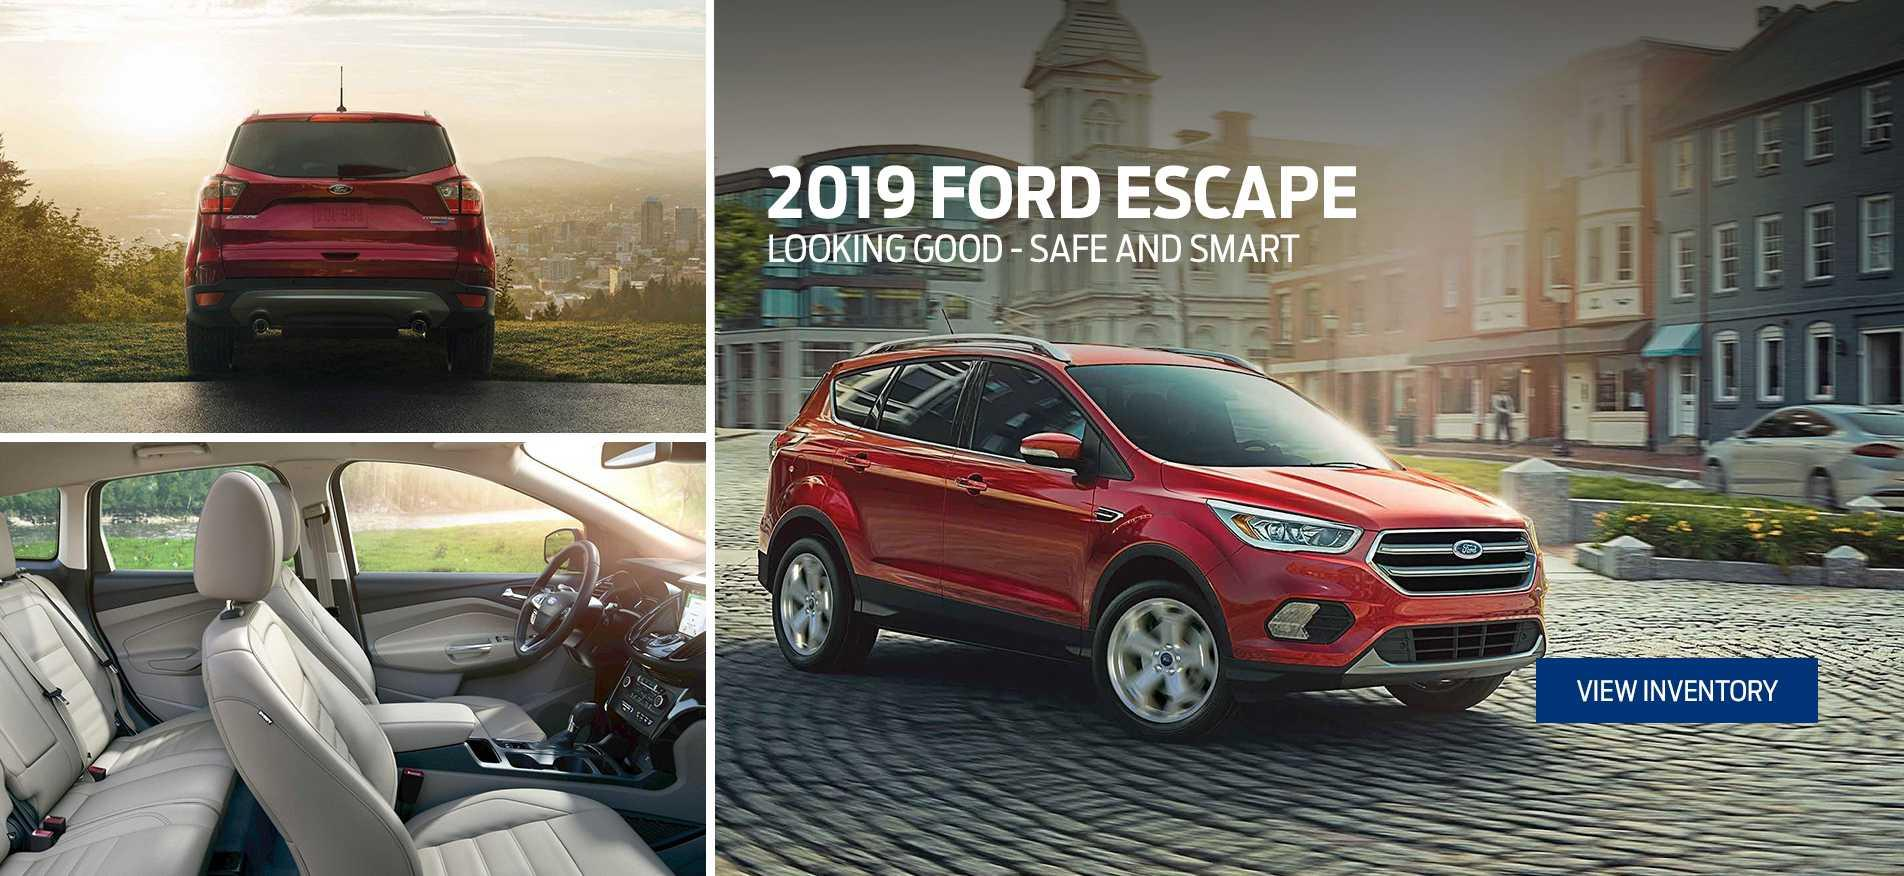 2019 Escape Glenoak Ford Victoria BC